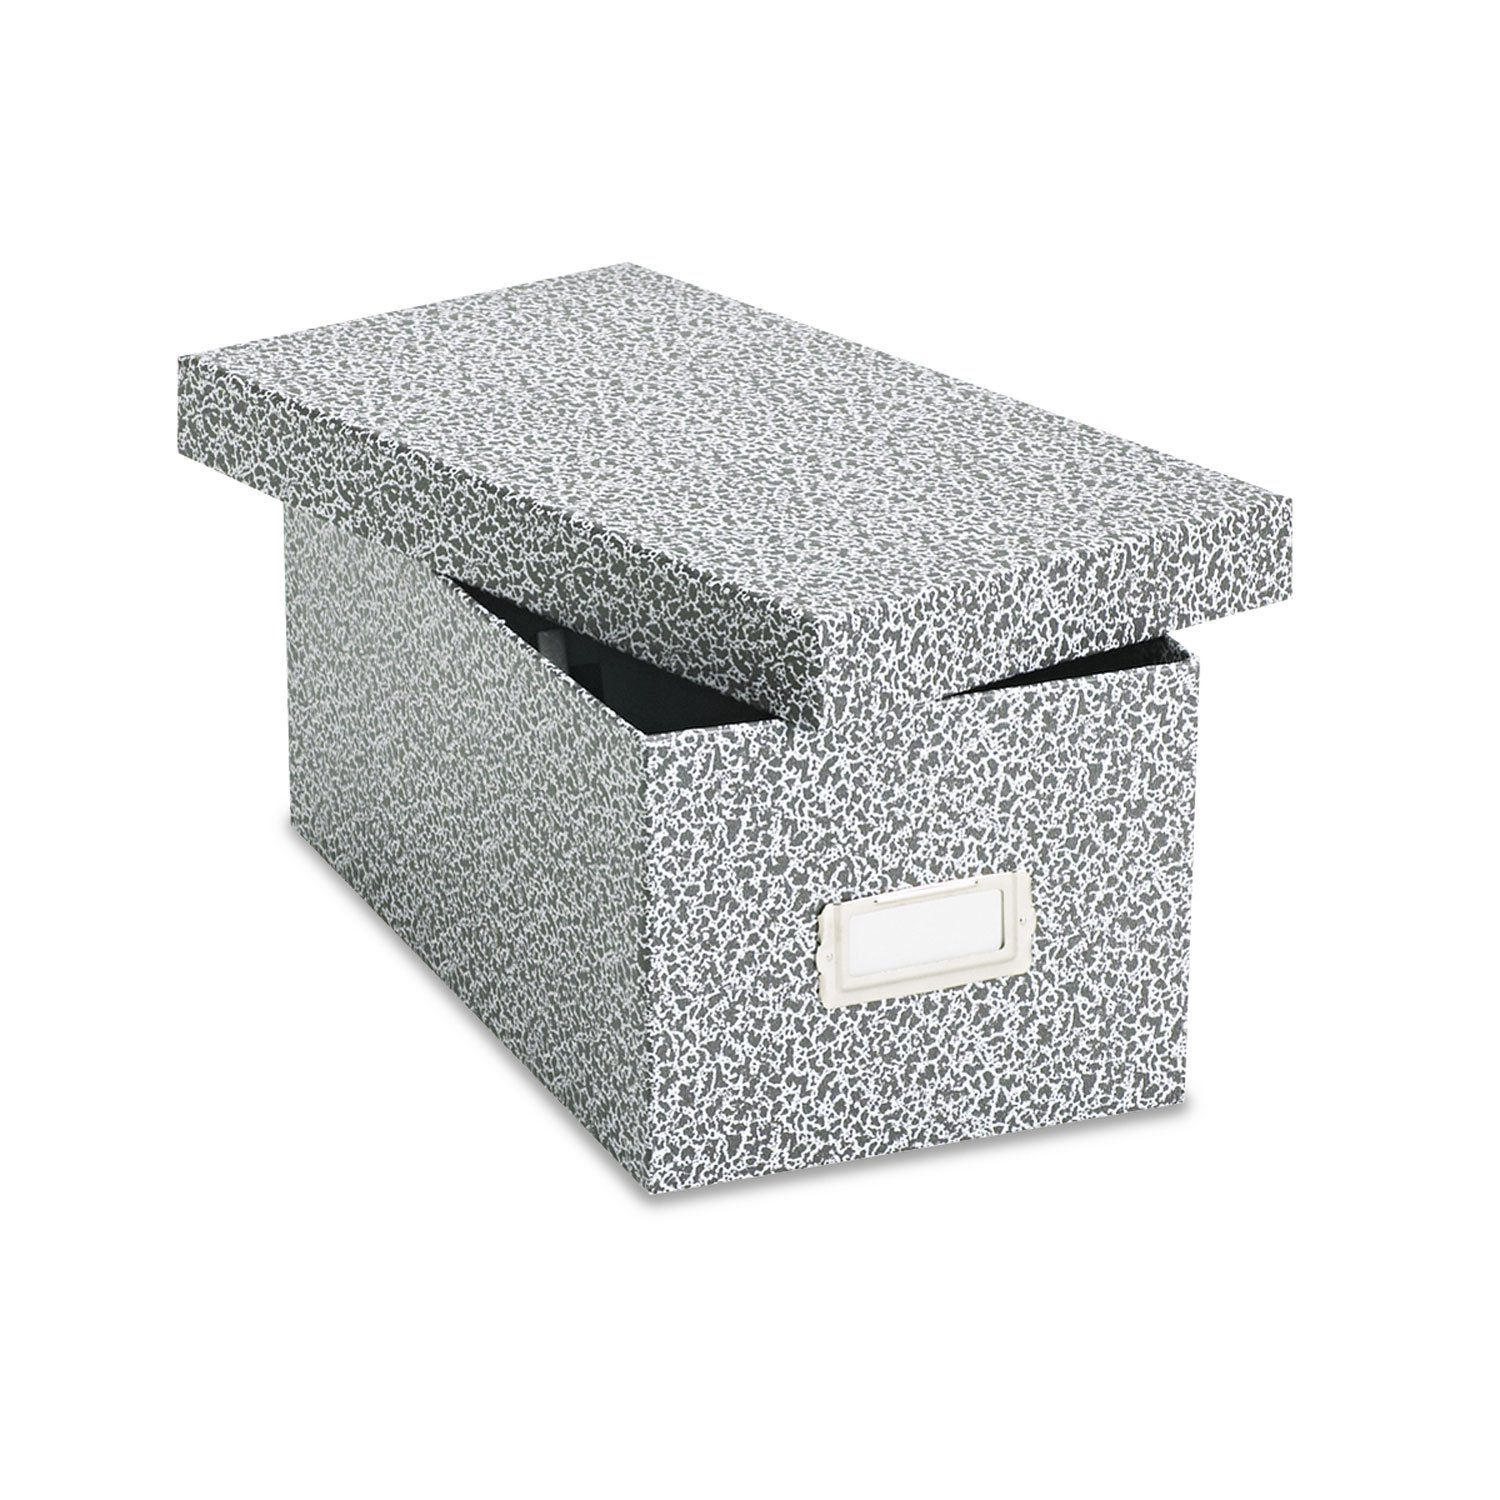 Oxford 40589 Reinforced Board Card File, Lift-Off Cover, Holds 1,200 4 x 6 Cards, Black/White by Office Realm